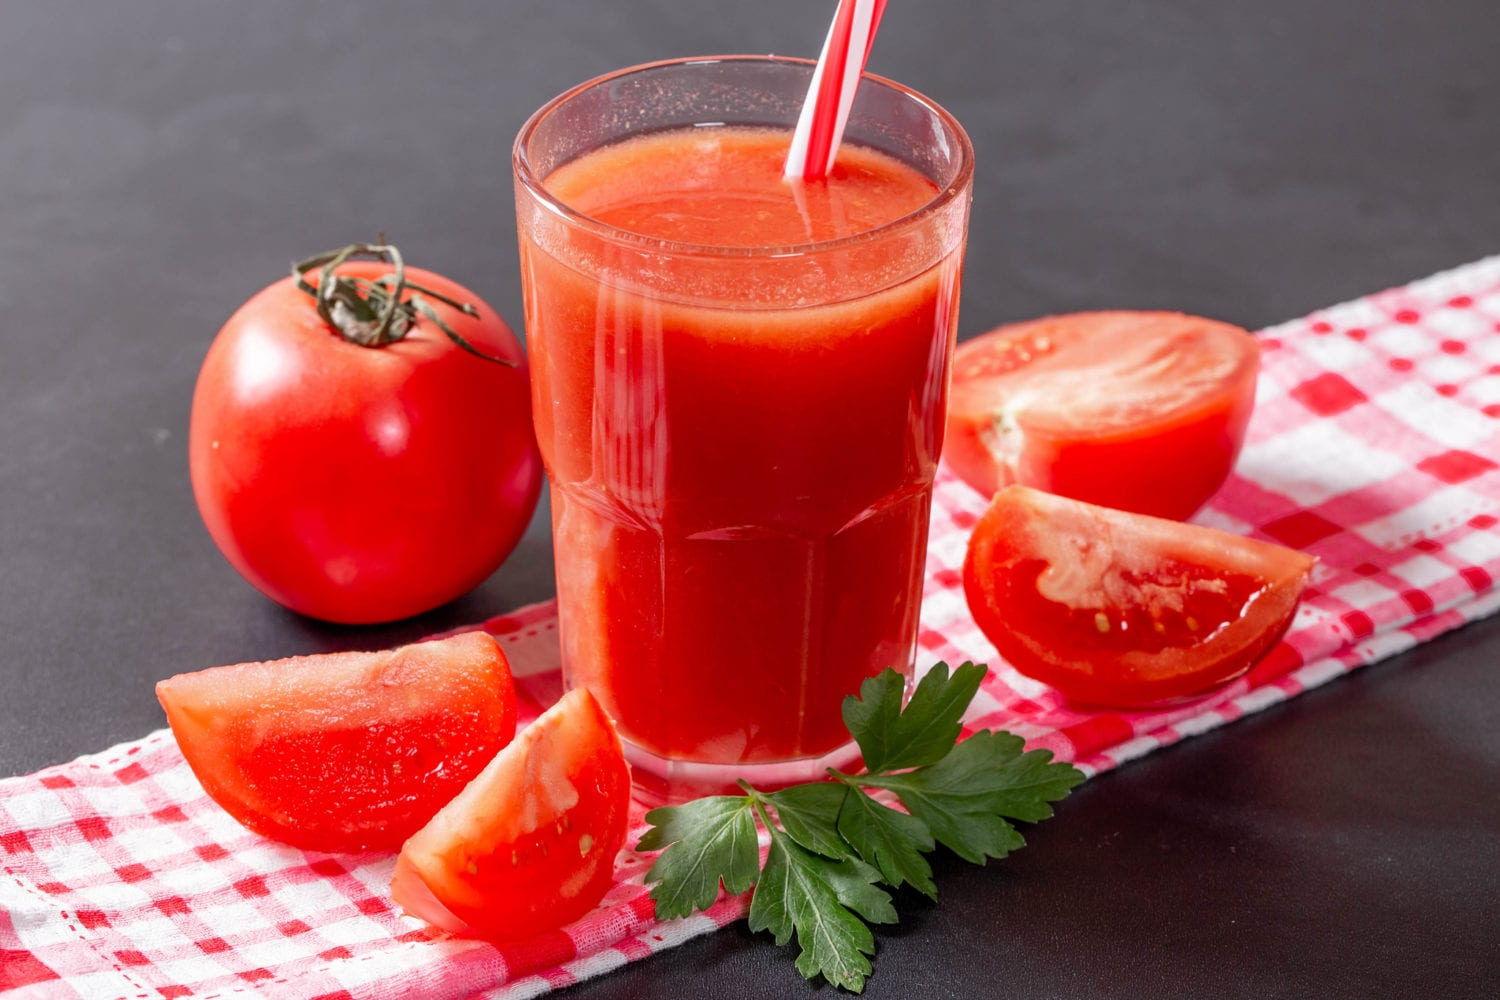 Tomato juice with sliced tomatoes on table